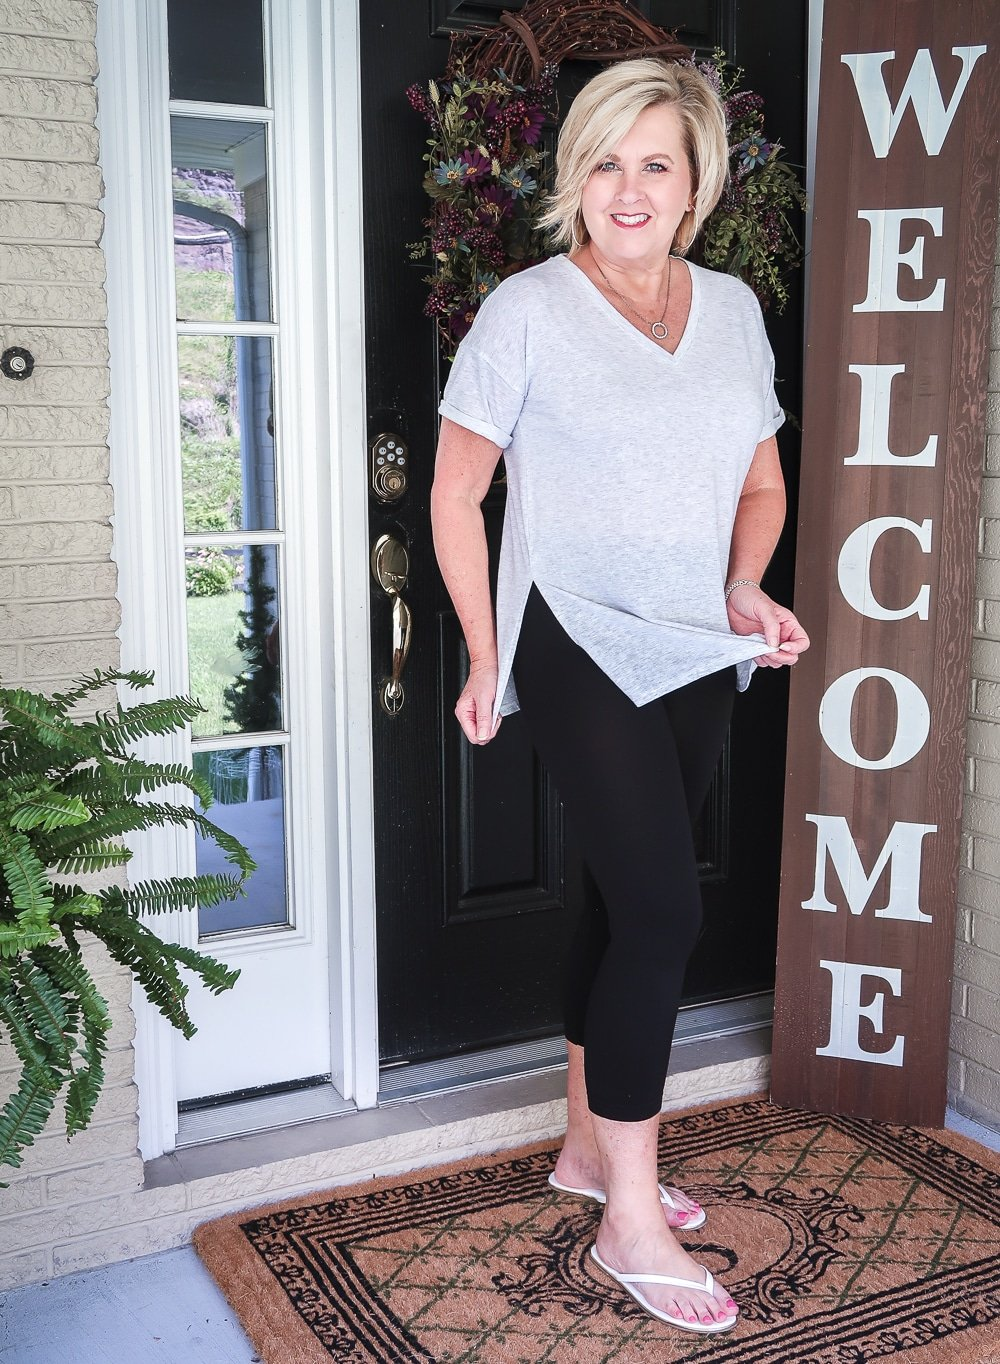 FASHION BLOGGER 50 IS NOT OLD IS WEARING A LIGHT GRAY TUNIC TOP AND BLACK CAPRI LEGGINGS WITH A PAIR OF FLIP FLOPS